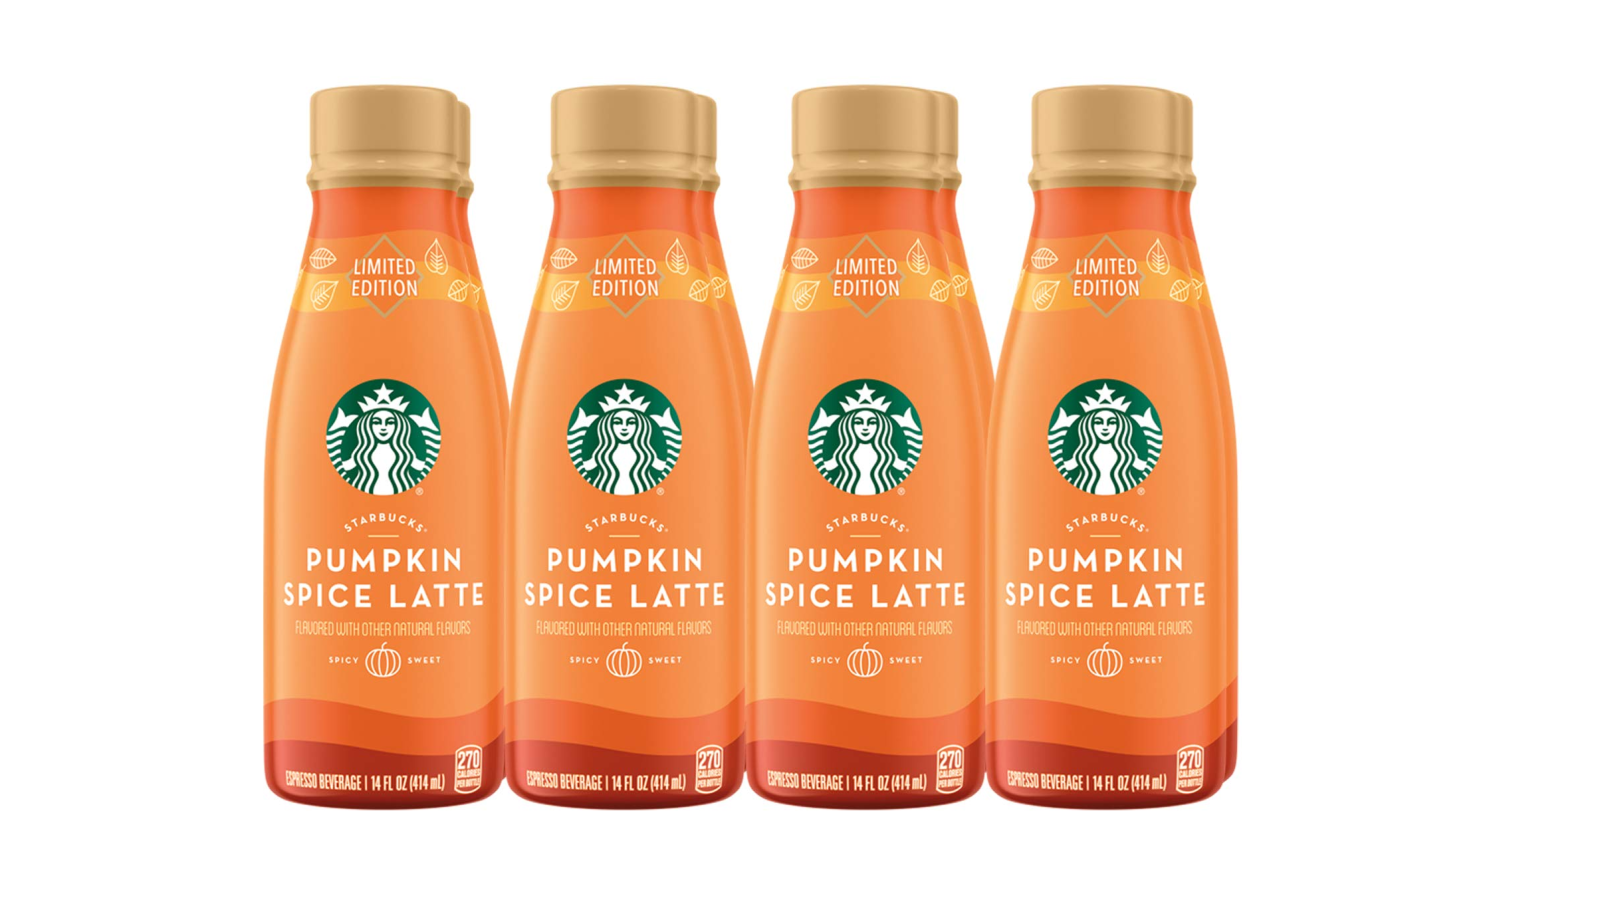 Enjoy Starbucks Iced Pumpkin Spice Lattes any time with 8 bottles for $9.50 (Reg. $20)